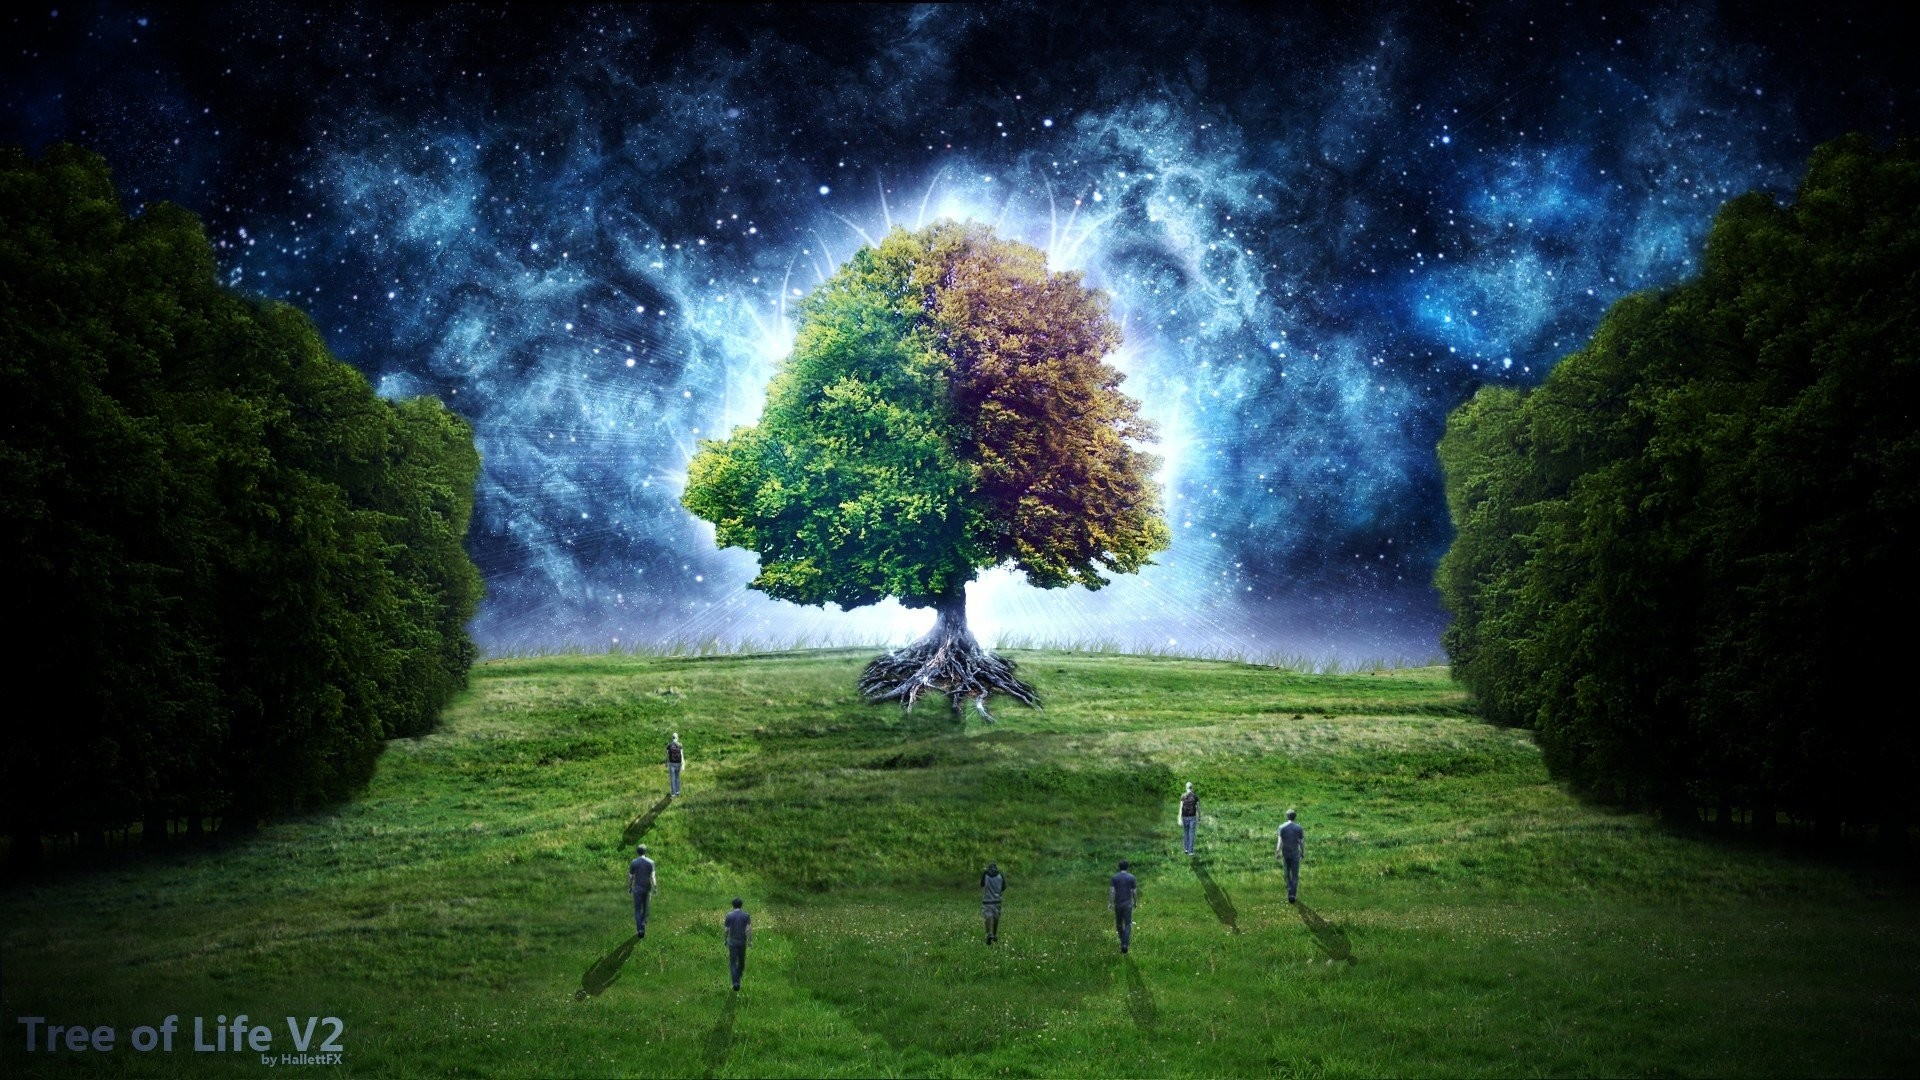 … tree of life wallpapers gallery image mrfab …